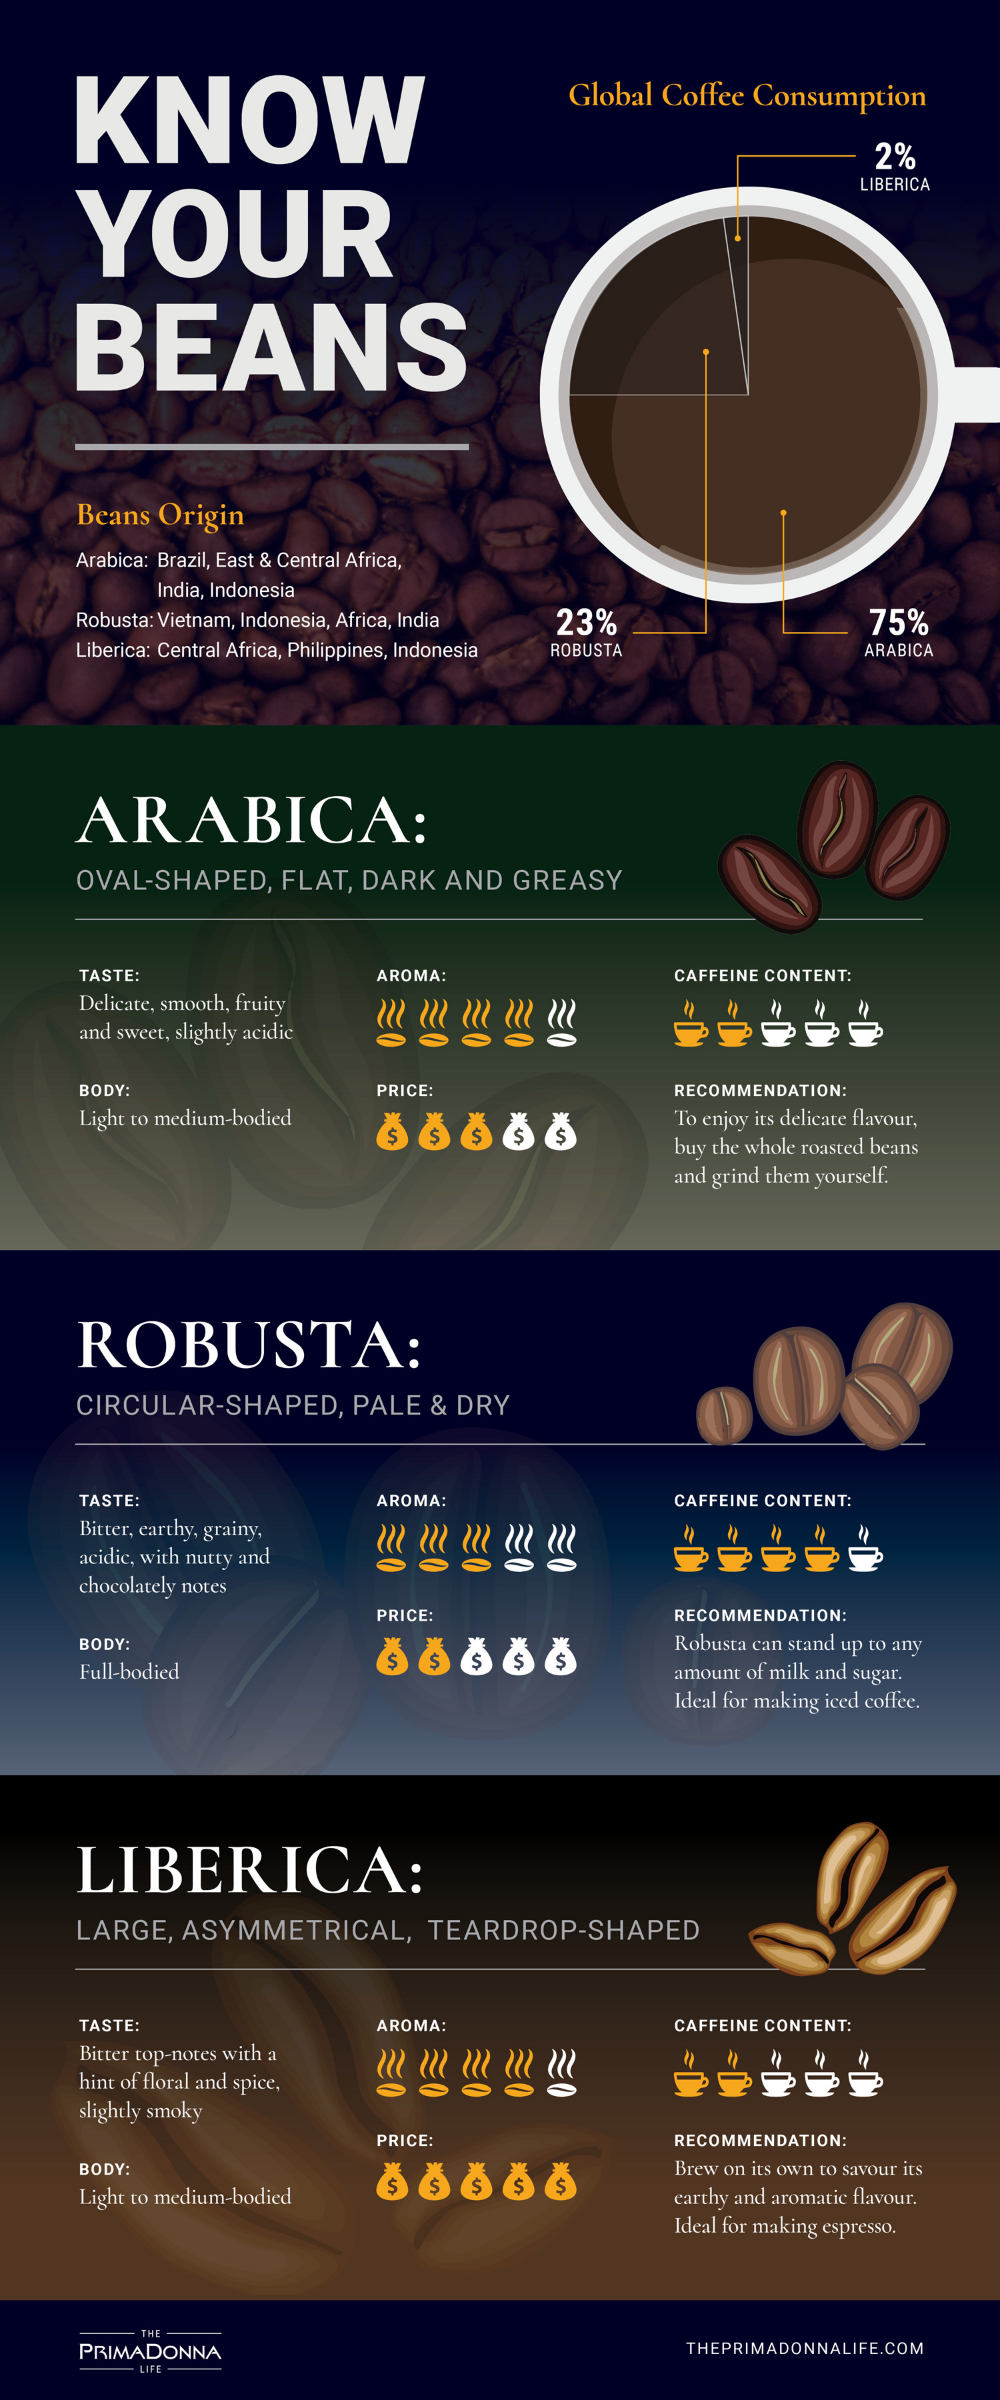 Arabica Robusta And Liberica Are Three Common Coffee Beans Used Globally Organicgreencoffe In 2020 Coffee Beans Photography Coffee Infographic Types Of Coffee Beans